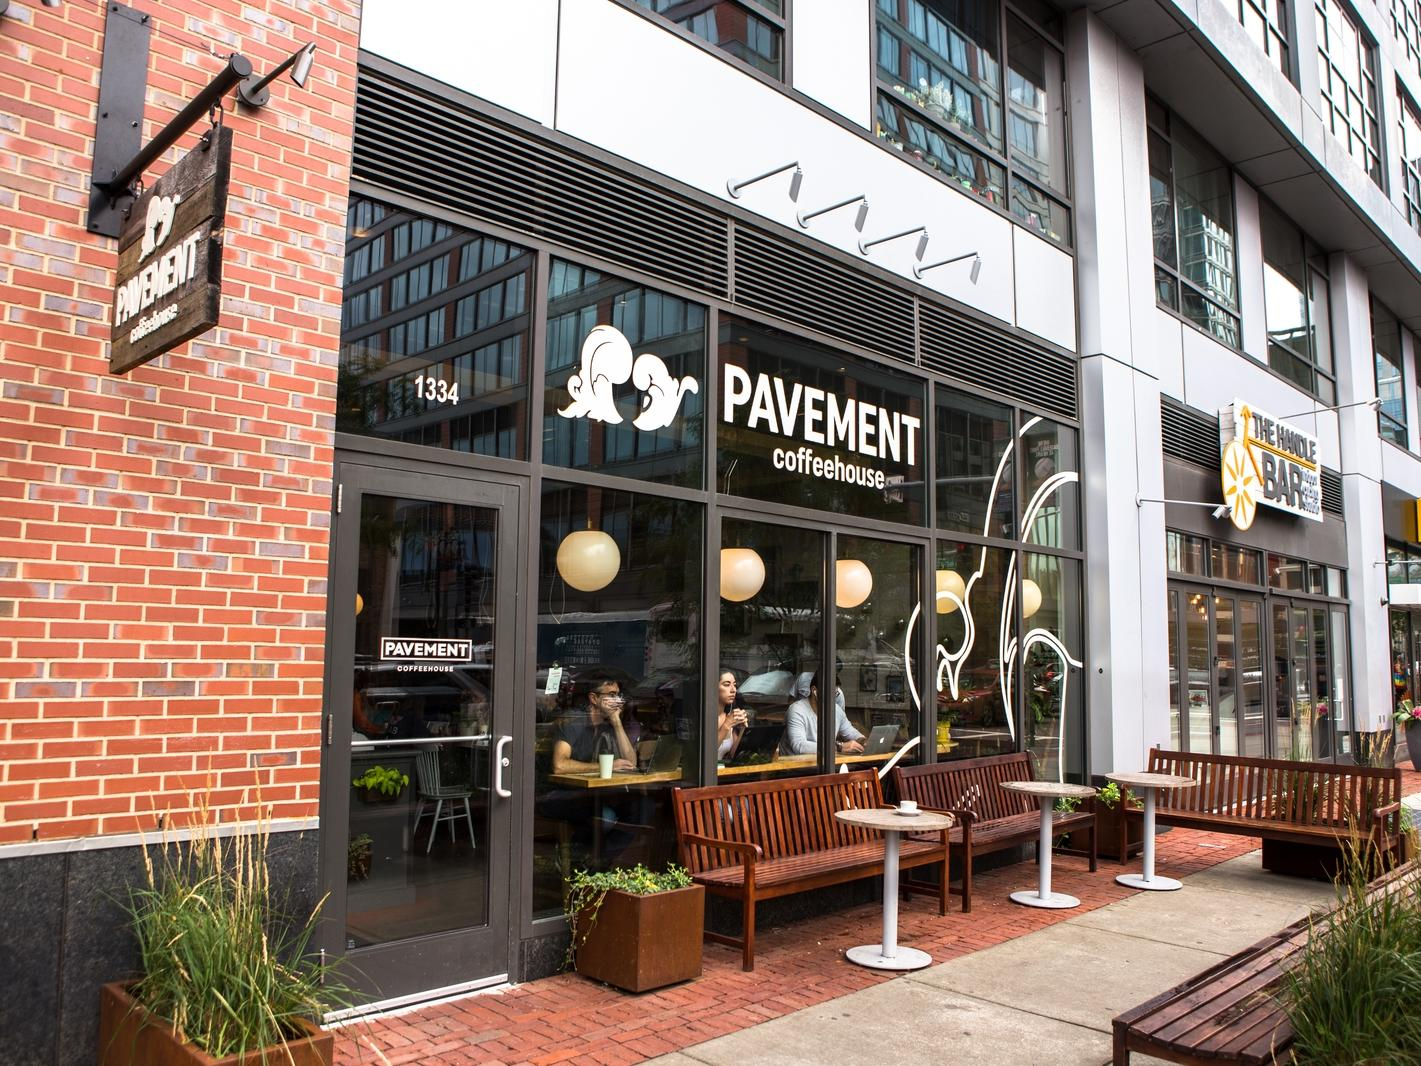 Pavement Coffeehouse Exterior